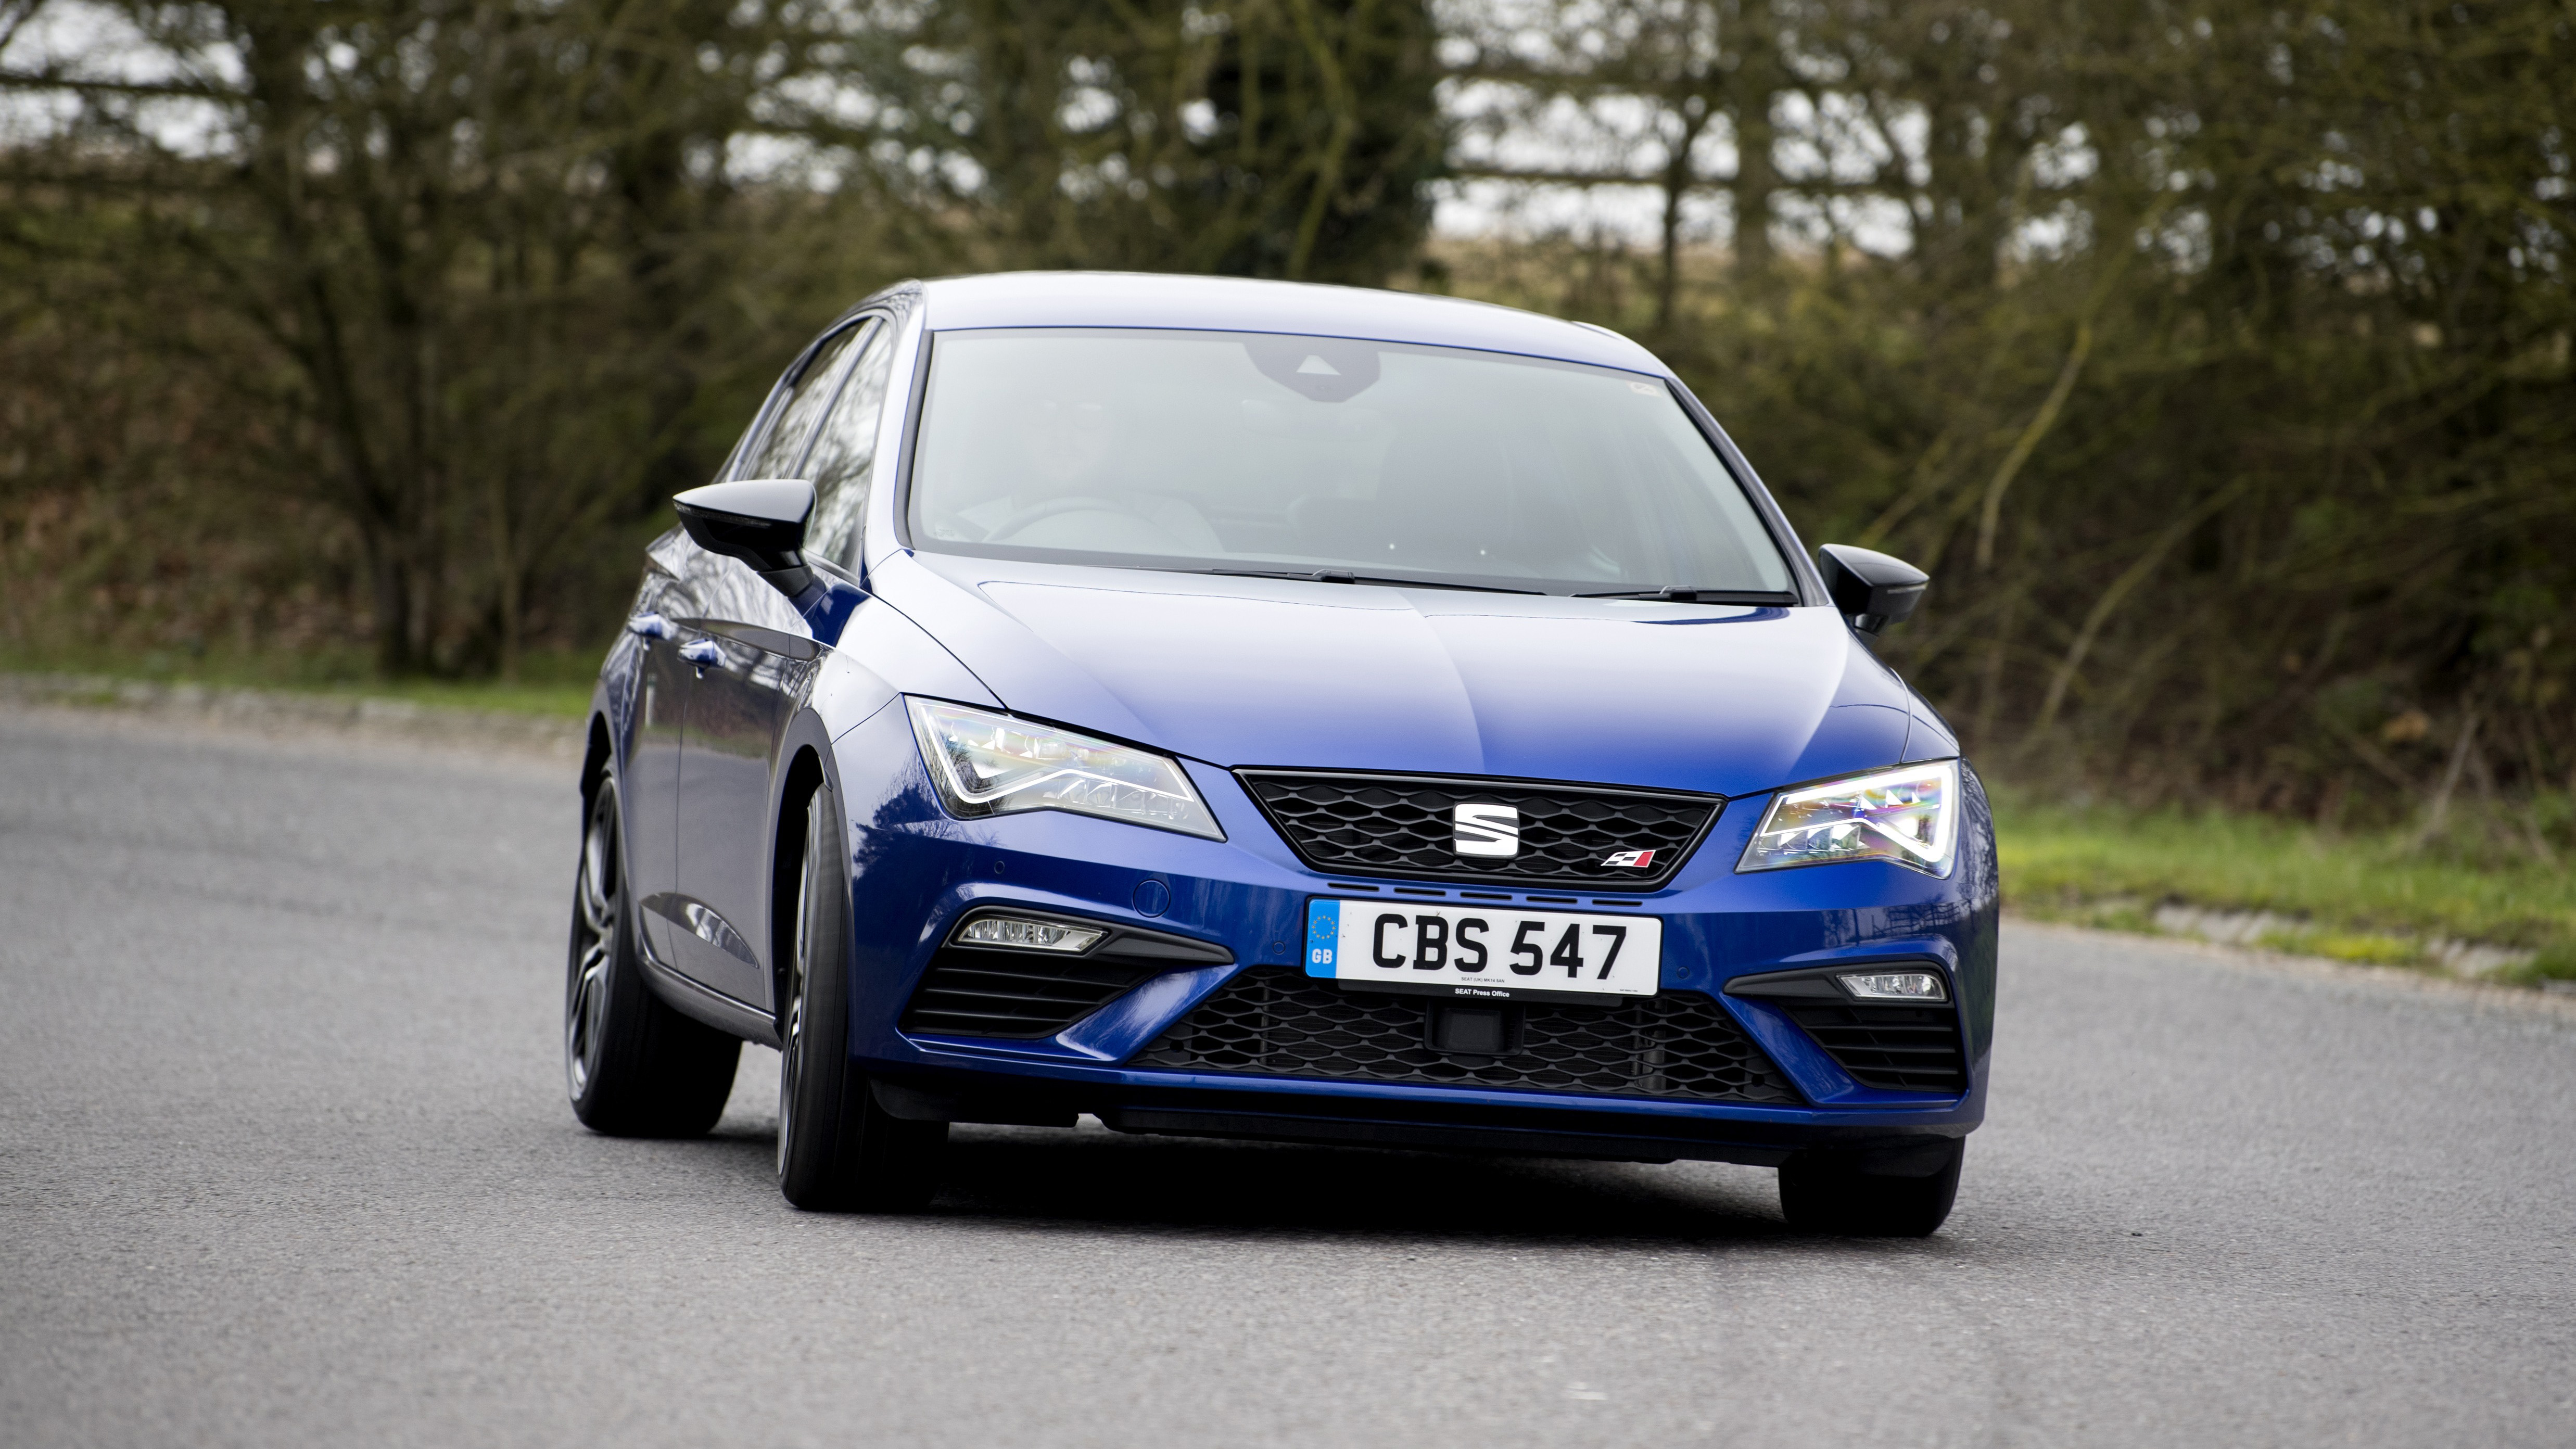 the new Seat Leon Cupra front